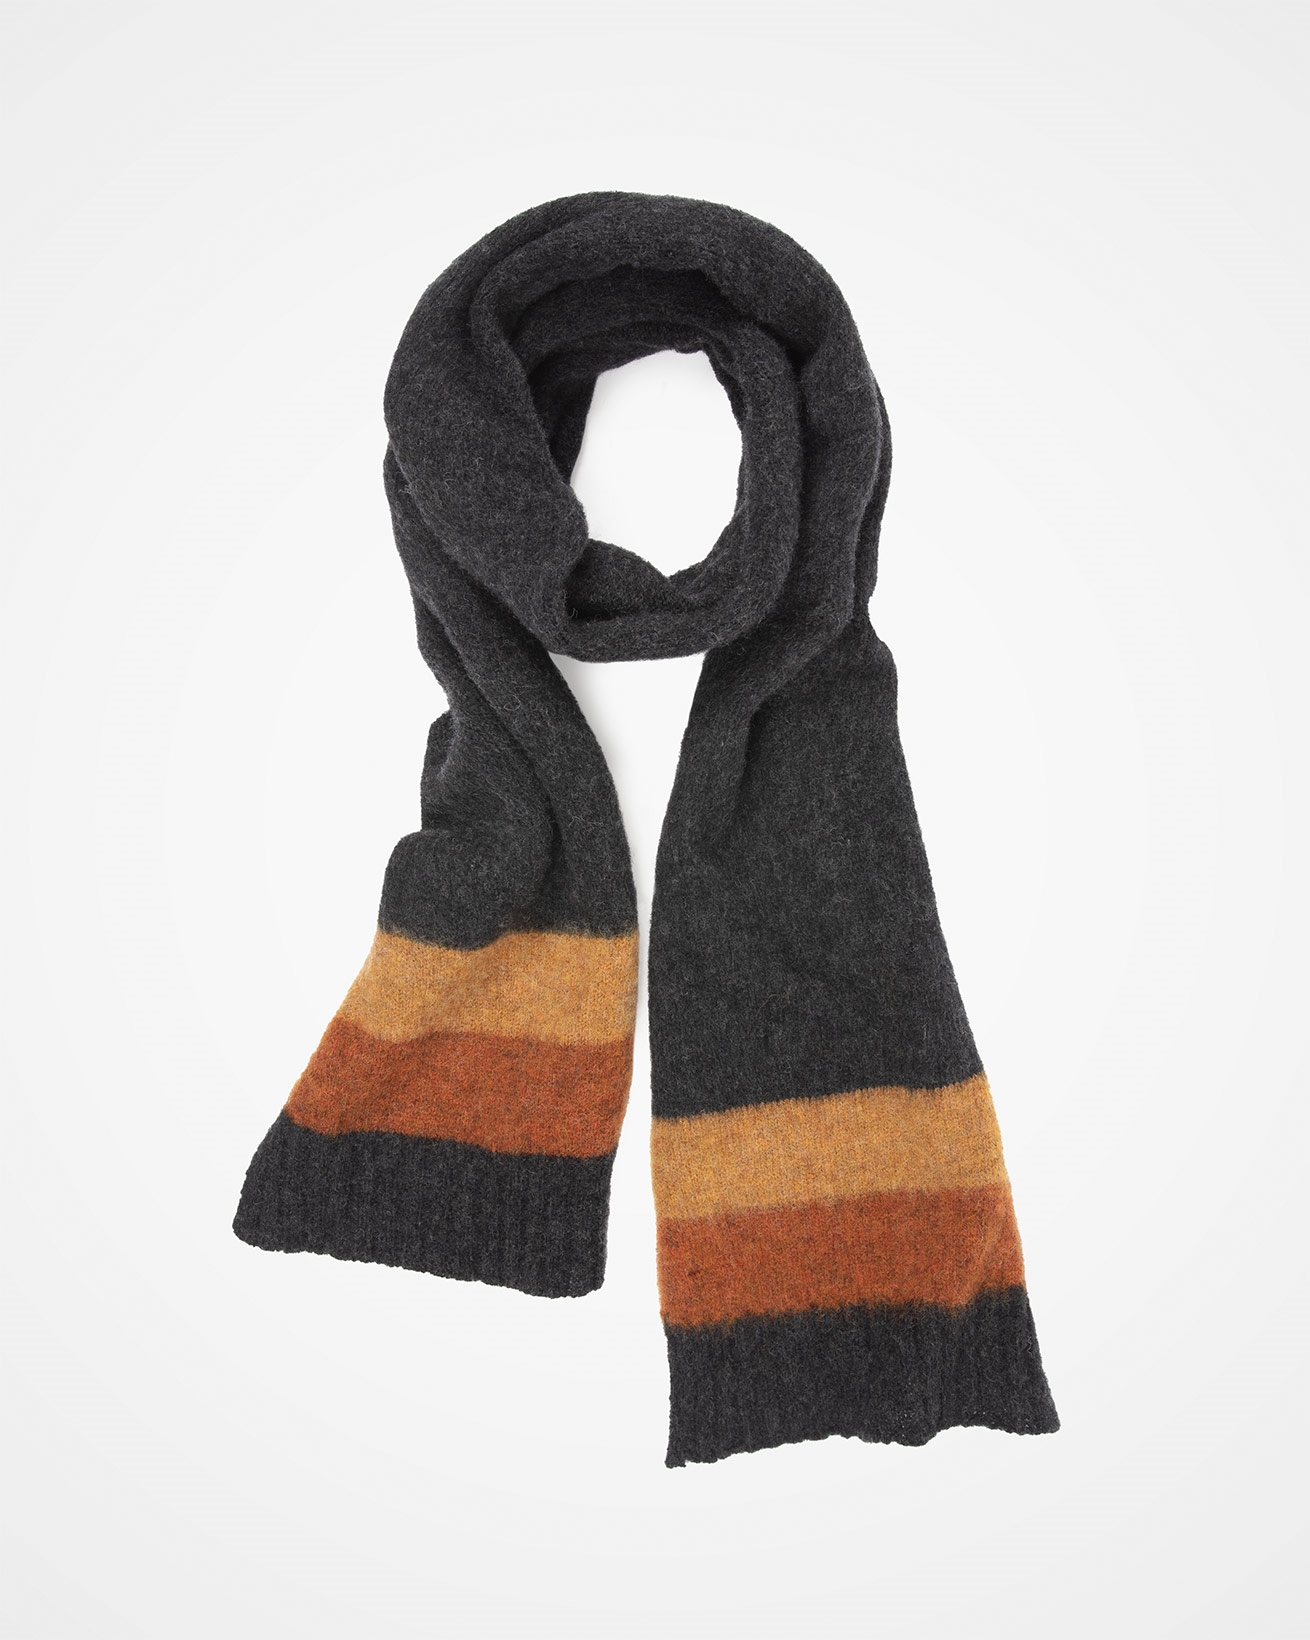 7751_shetland-wool-scarf_charcoal-colourblock_swirl.jpg